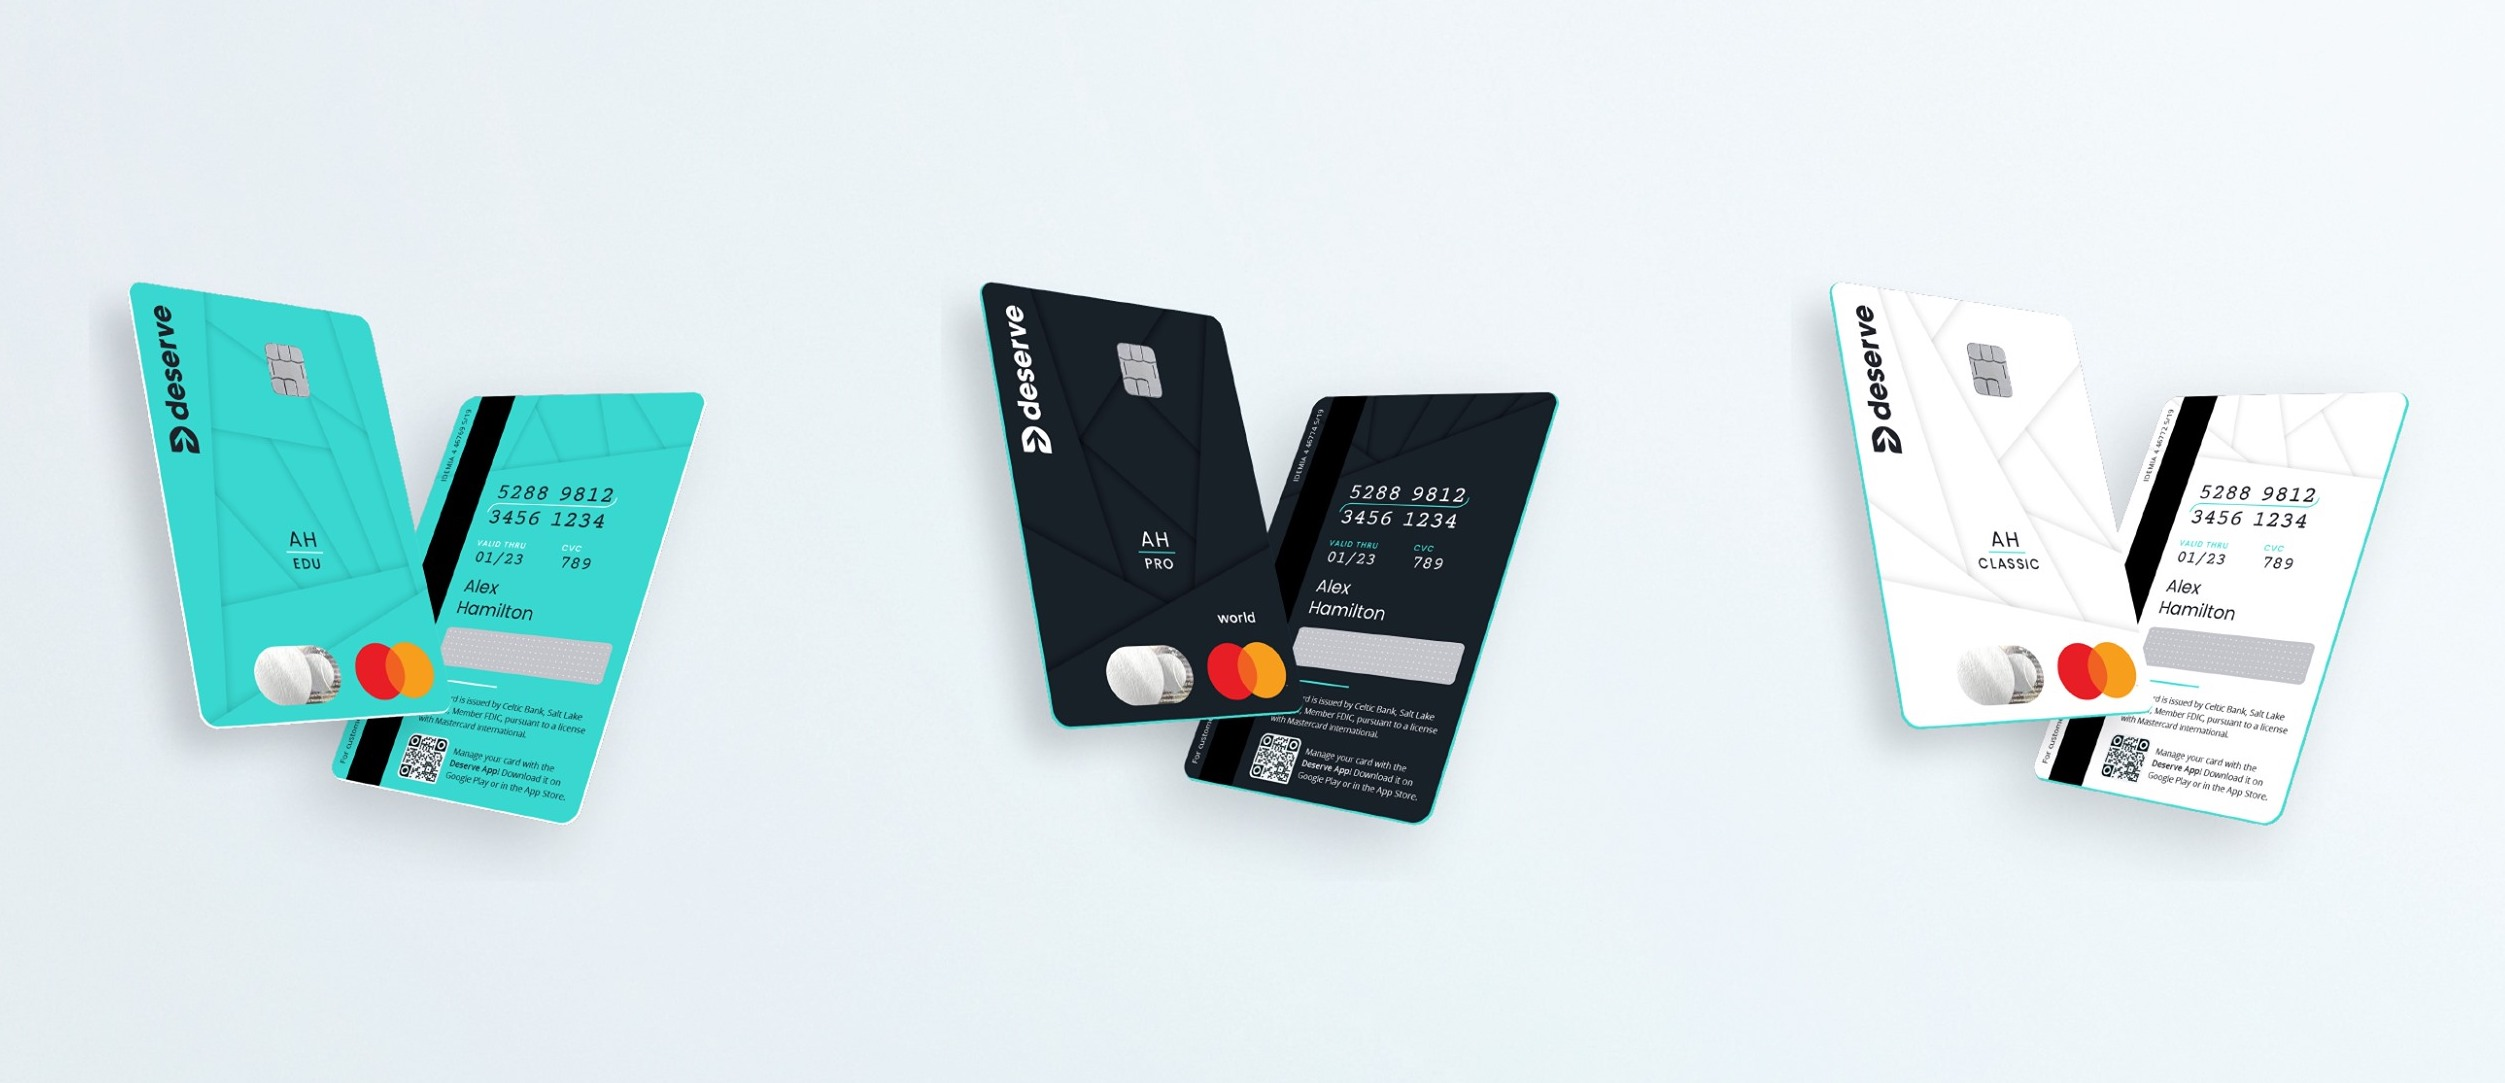 Twitter Alerts for Credit Card Leads